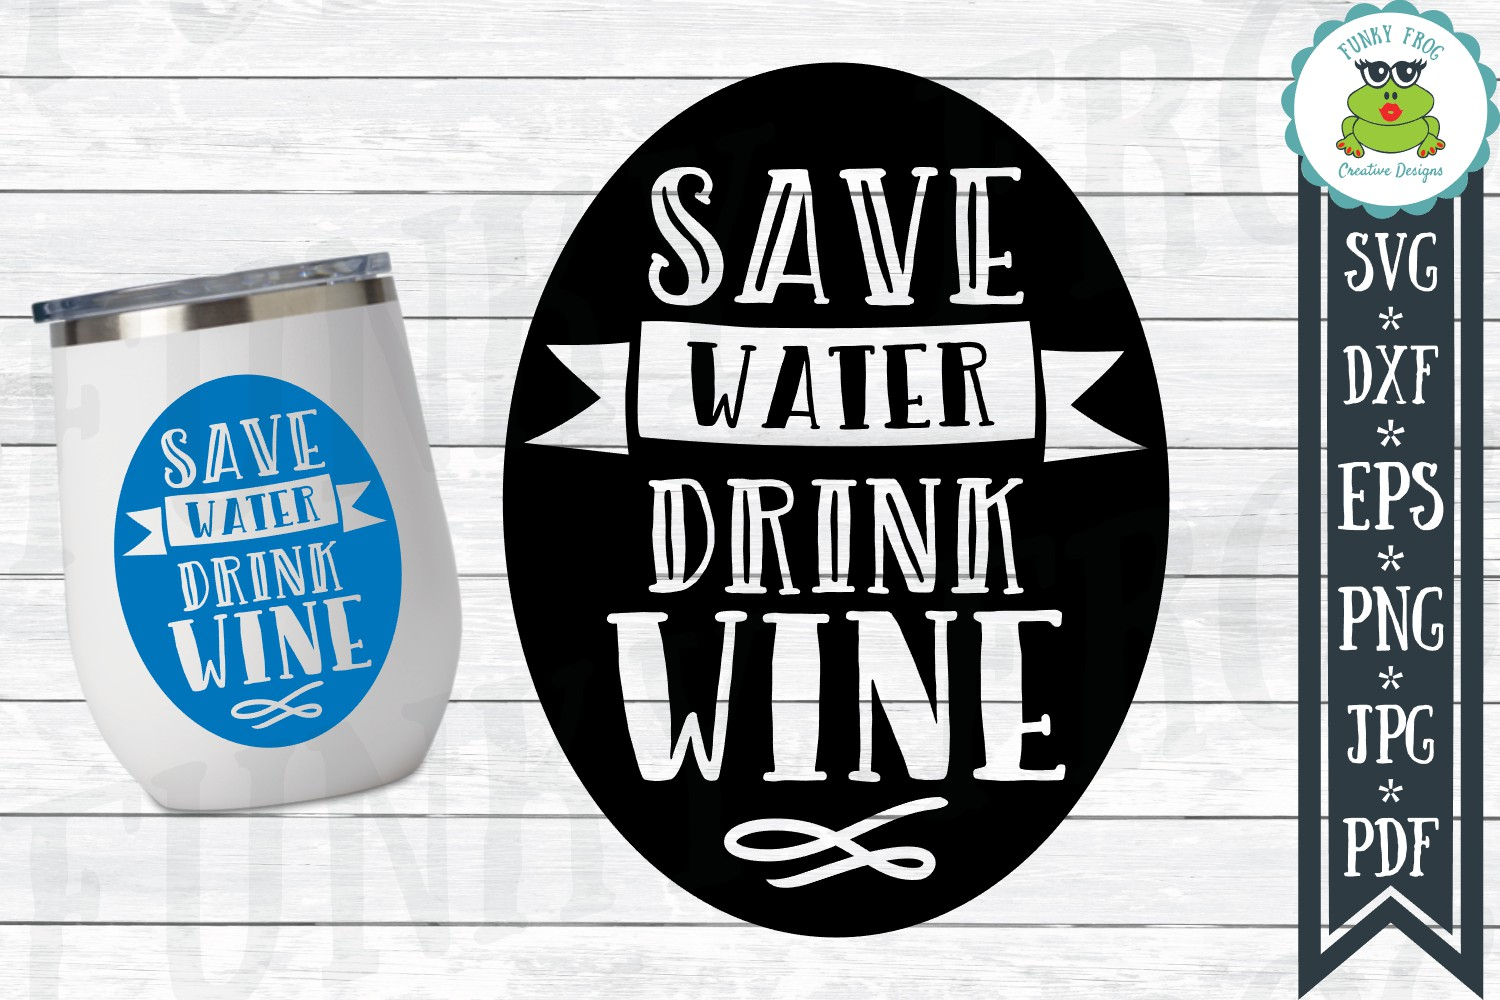 Download Free Save Water Drink Wine Svg Graphic By Funkyfrogcreativedesigns for Cricut Explore, Silhouette and other cutting machines.